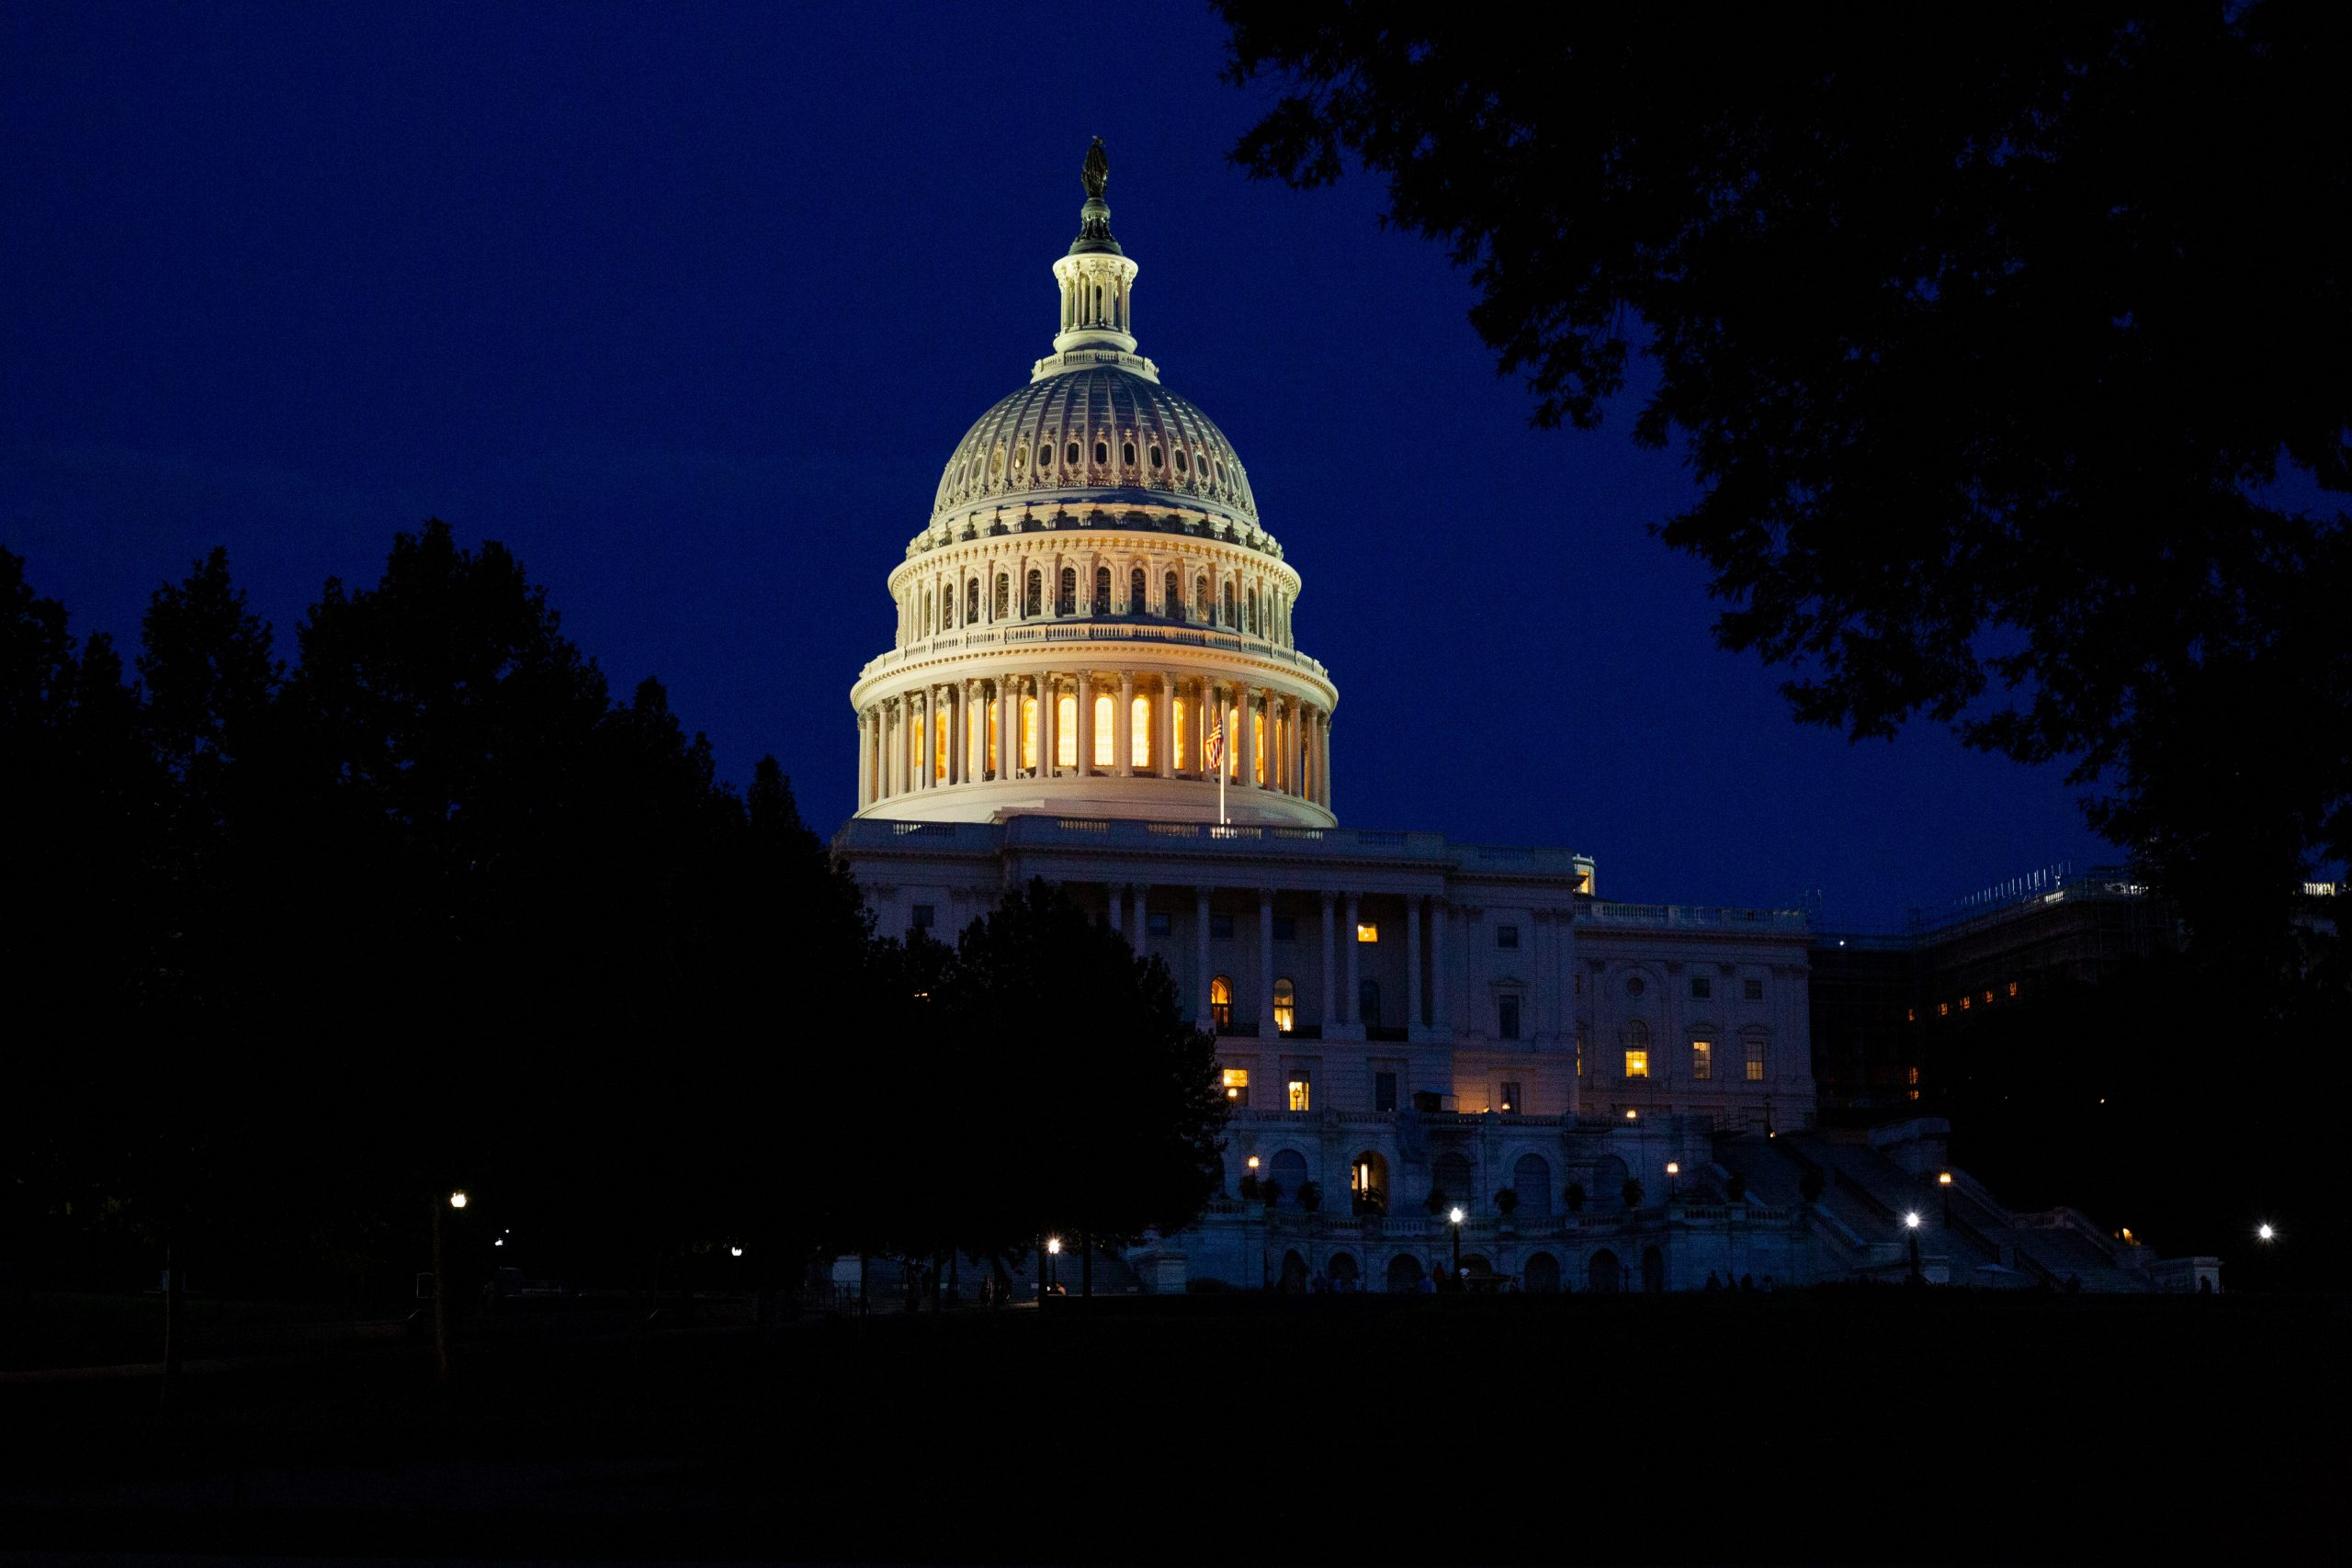 Image of the United States Congress building lit at night